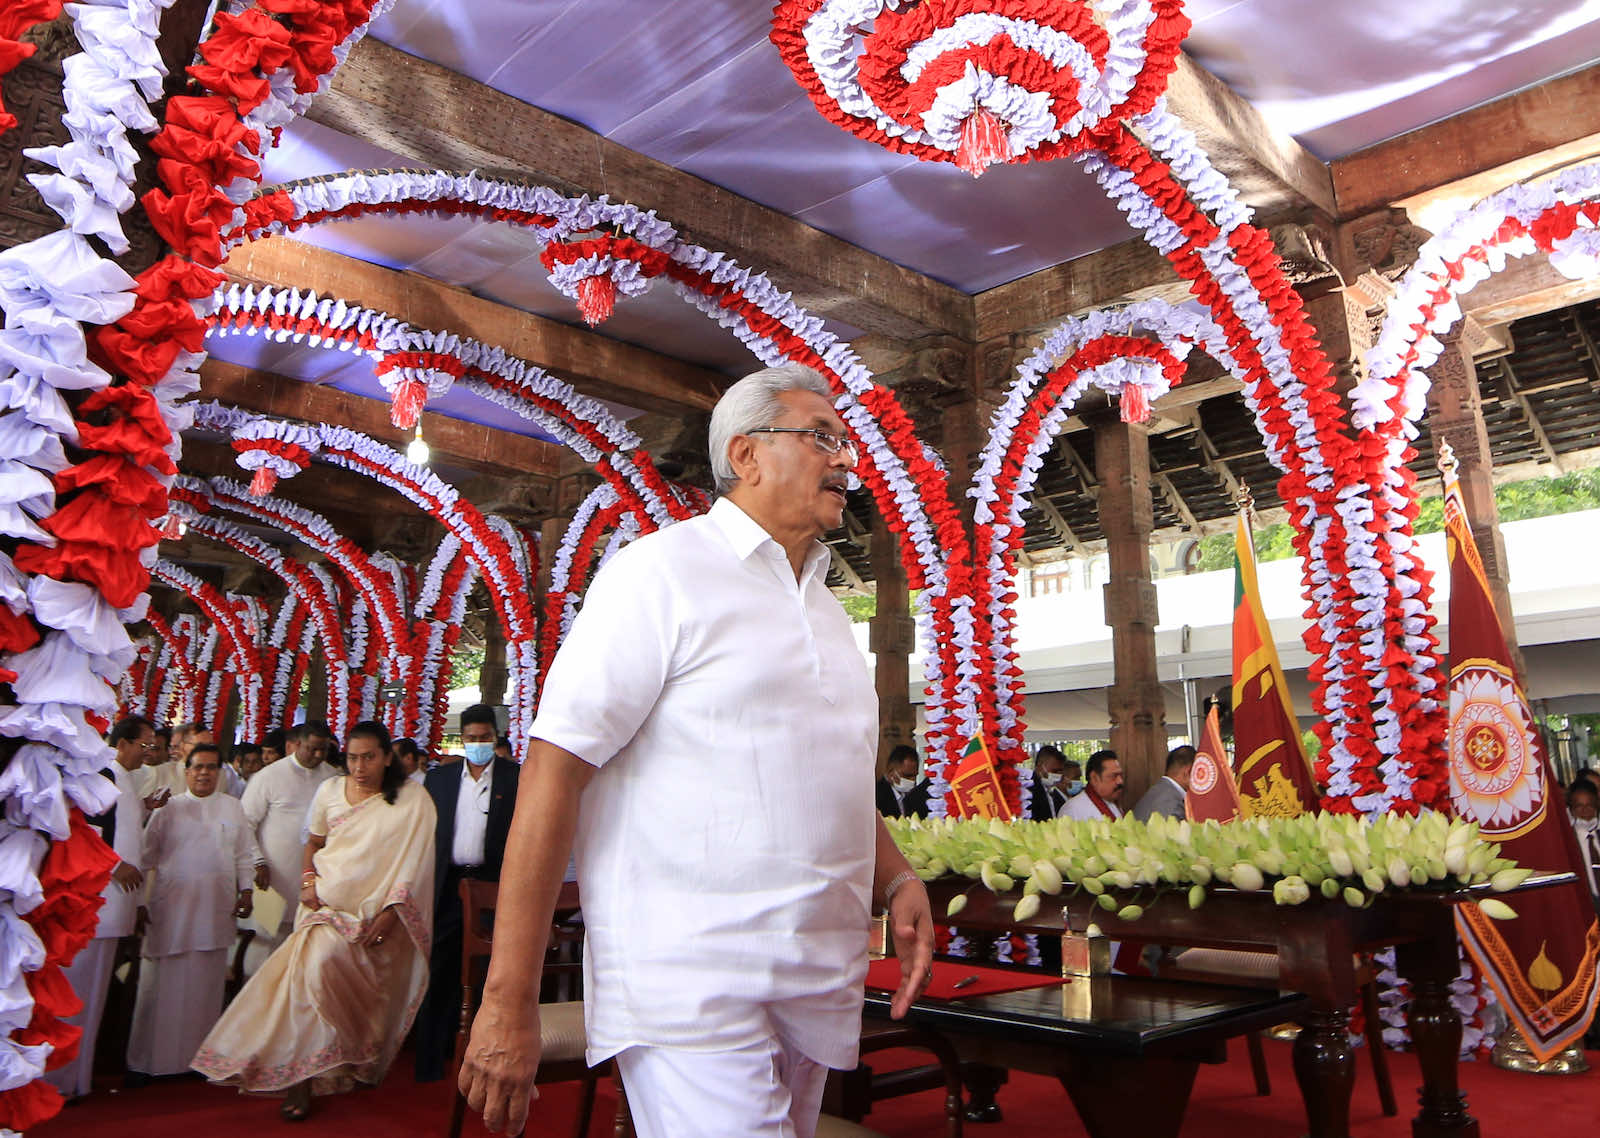 Sri Lanka's President Gotabaya Rajapaksa after the swearing in of the new cabinet ministers in August 2020 (Tharaka Basnayaka/NurPhoto via Getty Images)